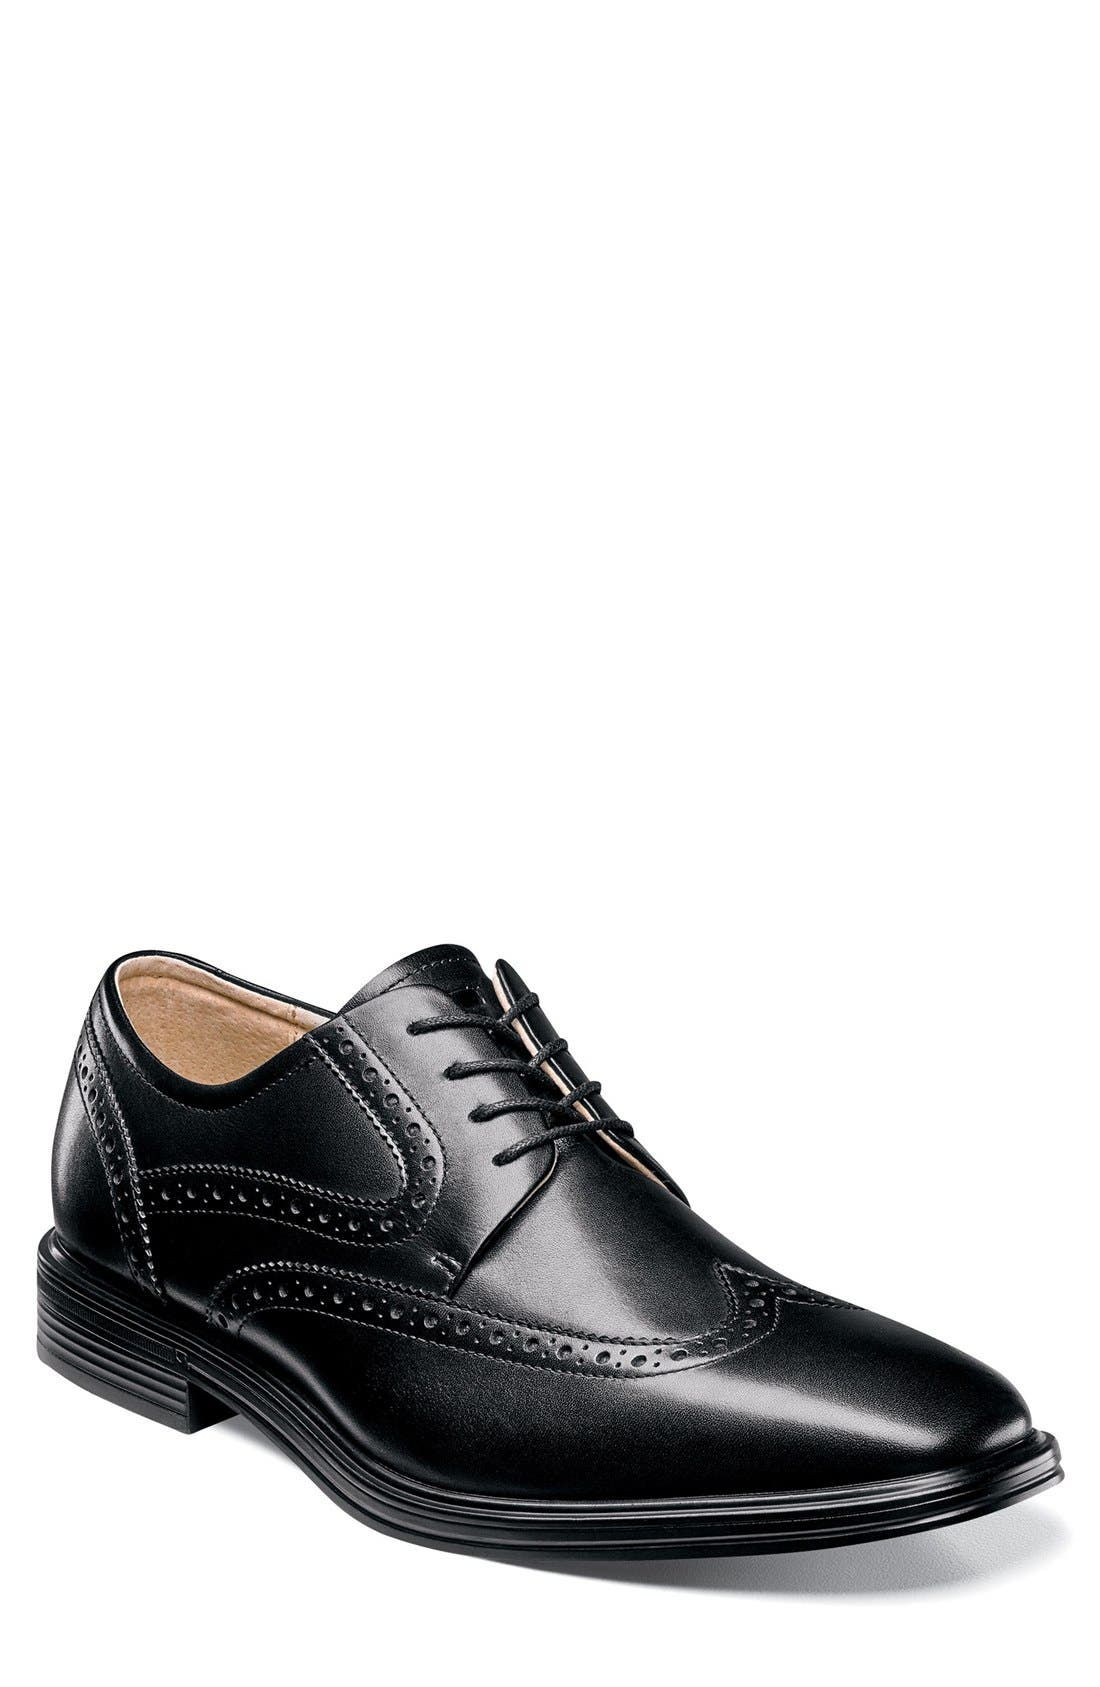 Heights Wingtip,                             Main thumbnail 1, color,                             Black Leather